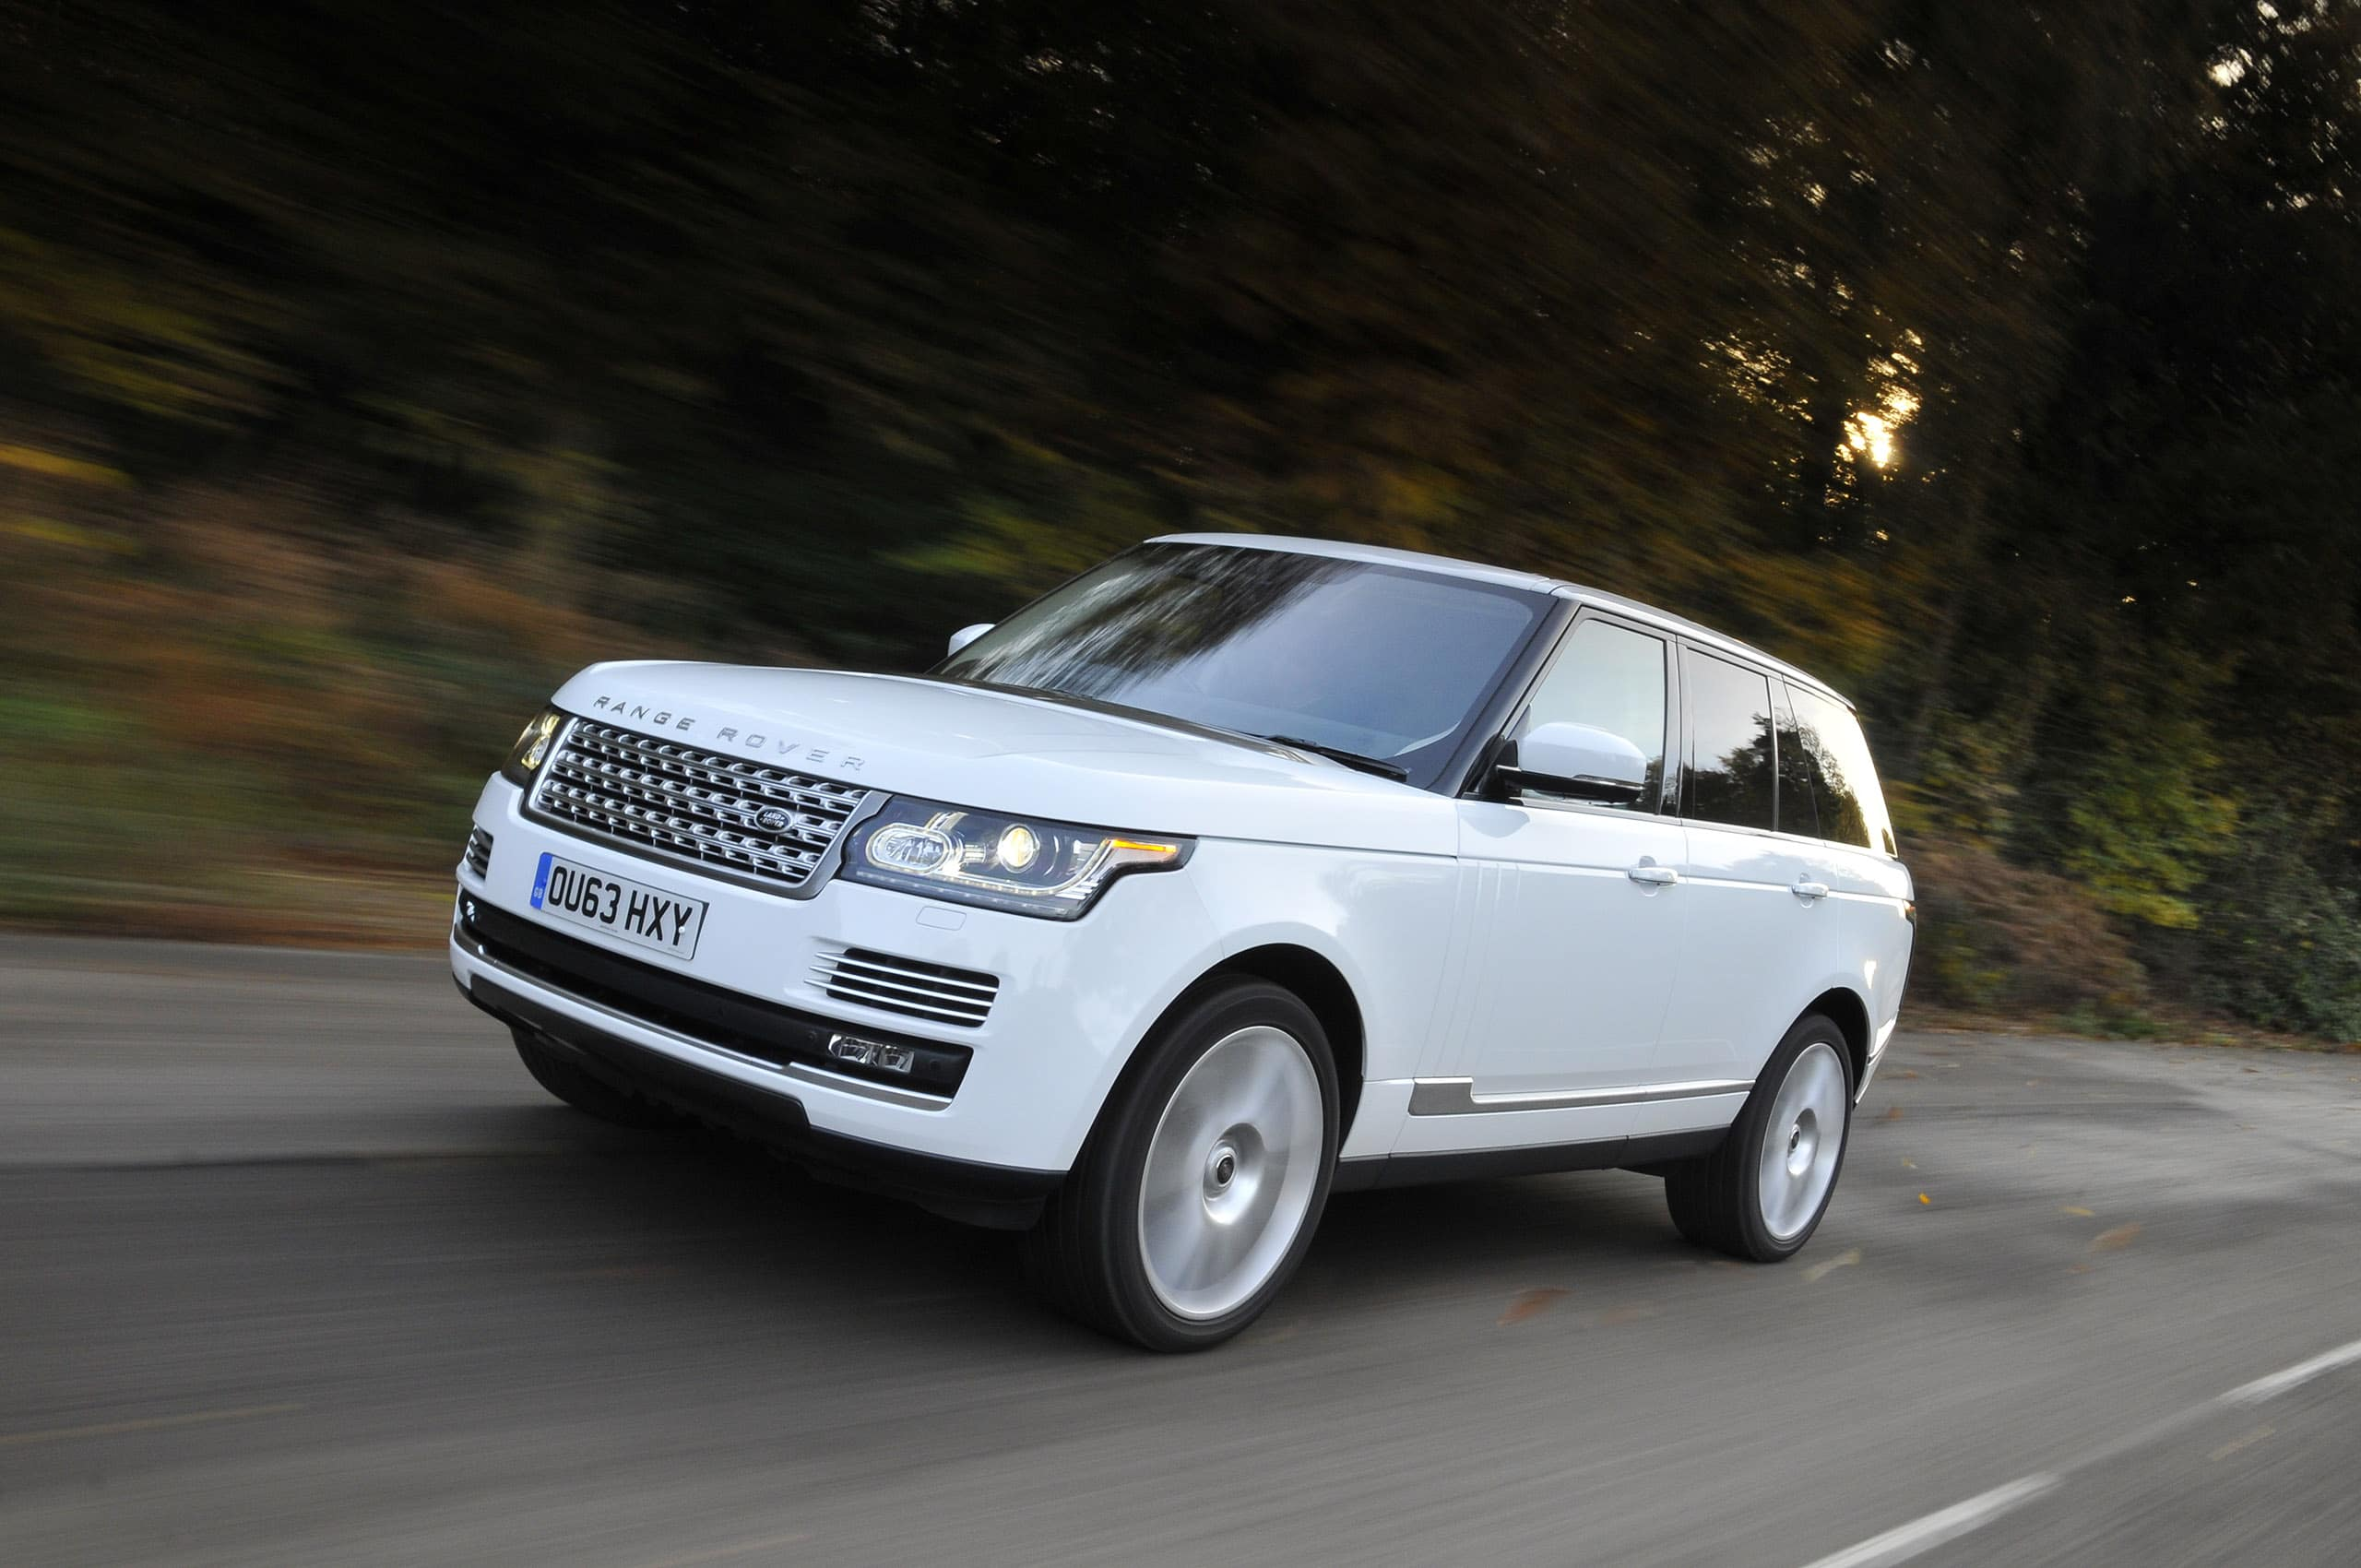 Leader Among Tampa Land Rover Dealers for Your Next Range Rover